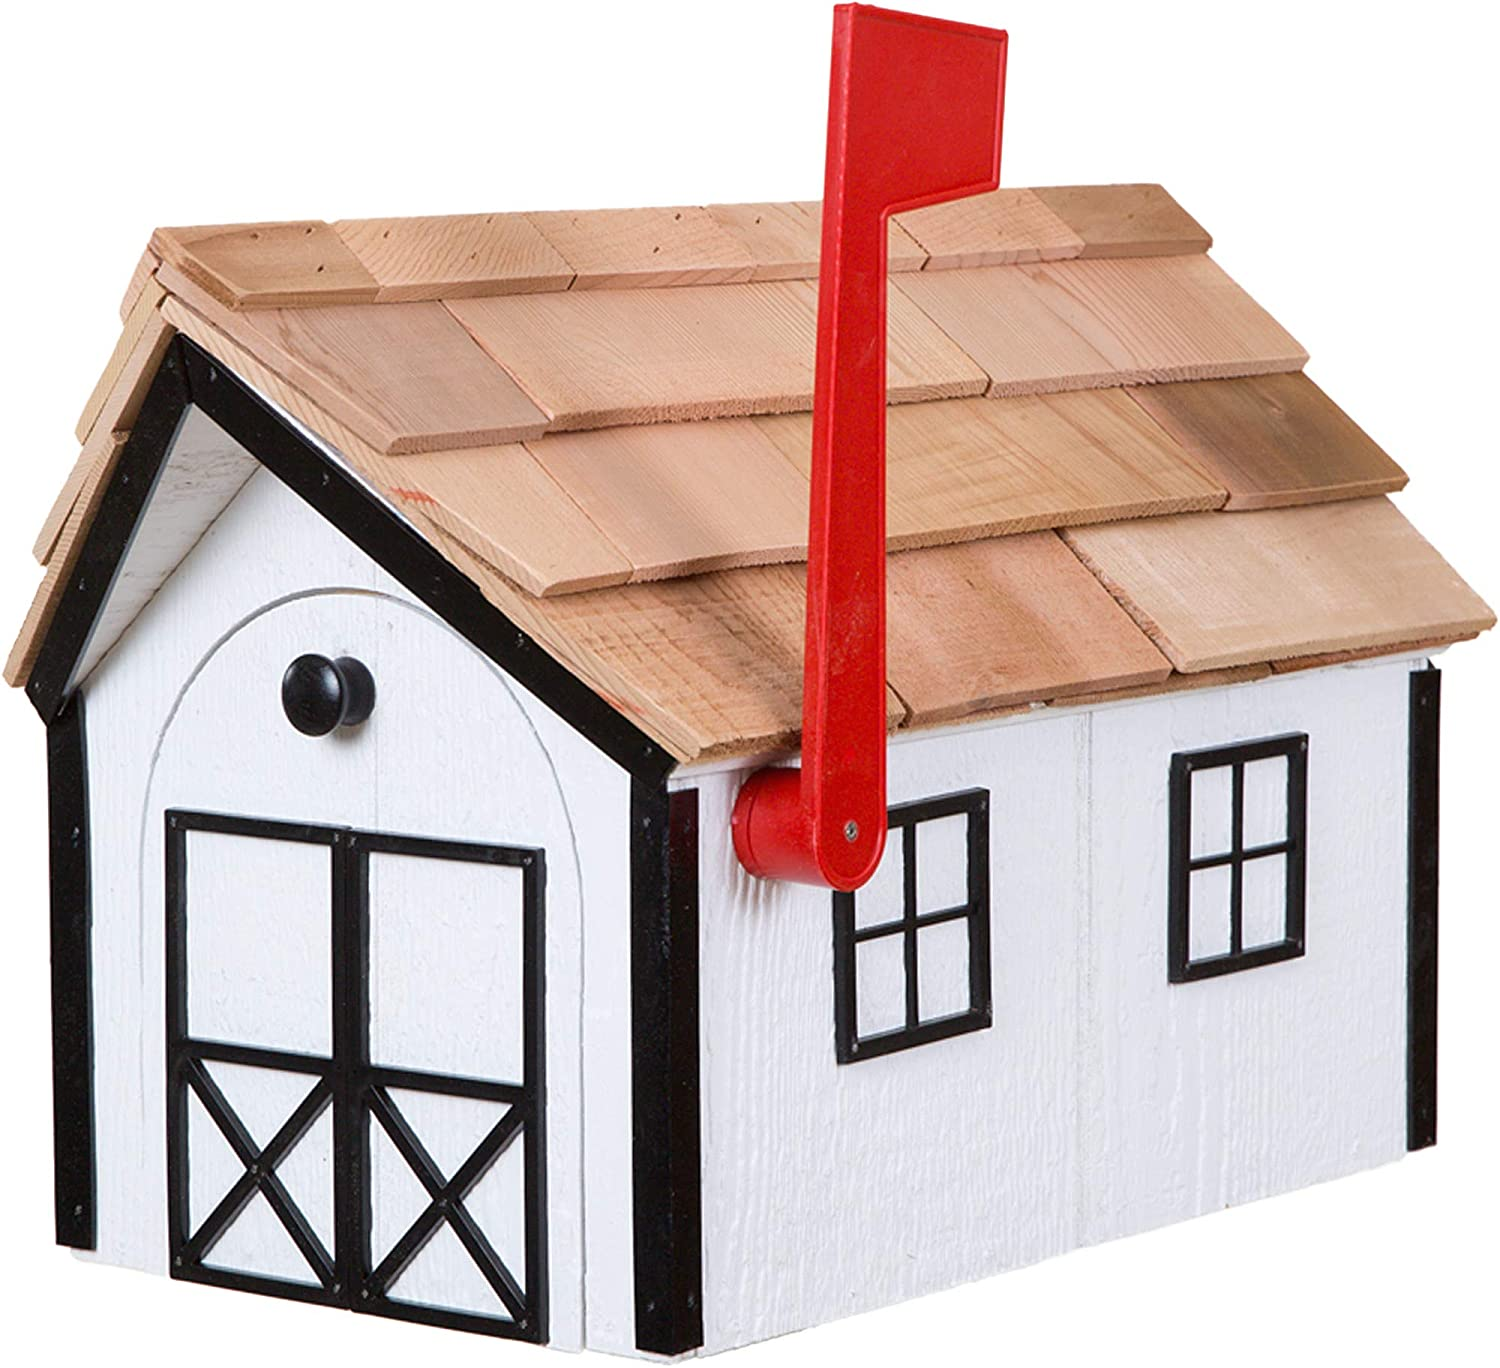 All items free 35% OFF shipping Amish Cedar Roof Wooden Mailbox with Window Trim w White Door